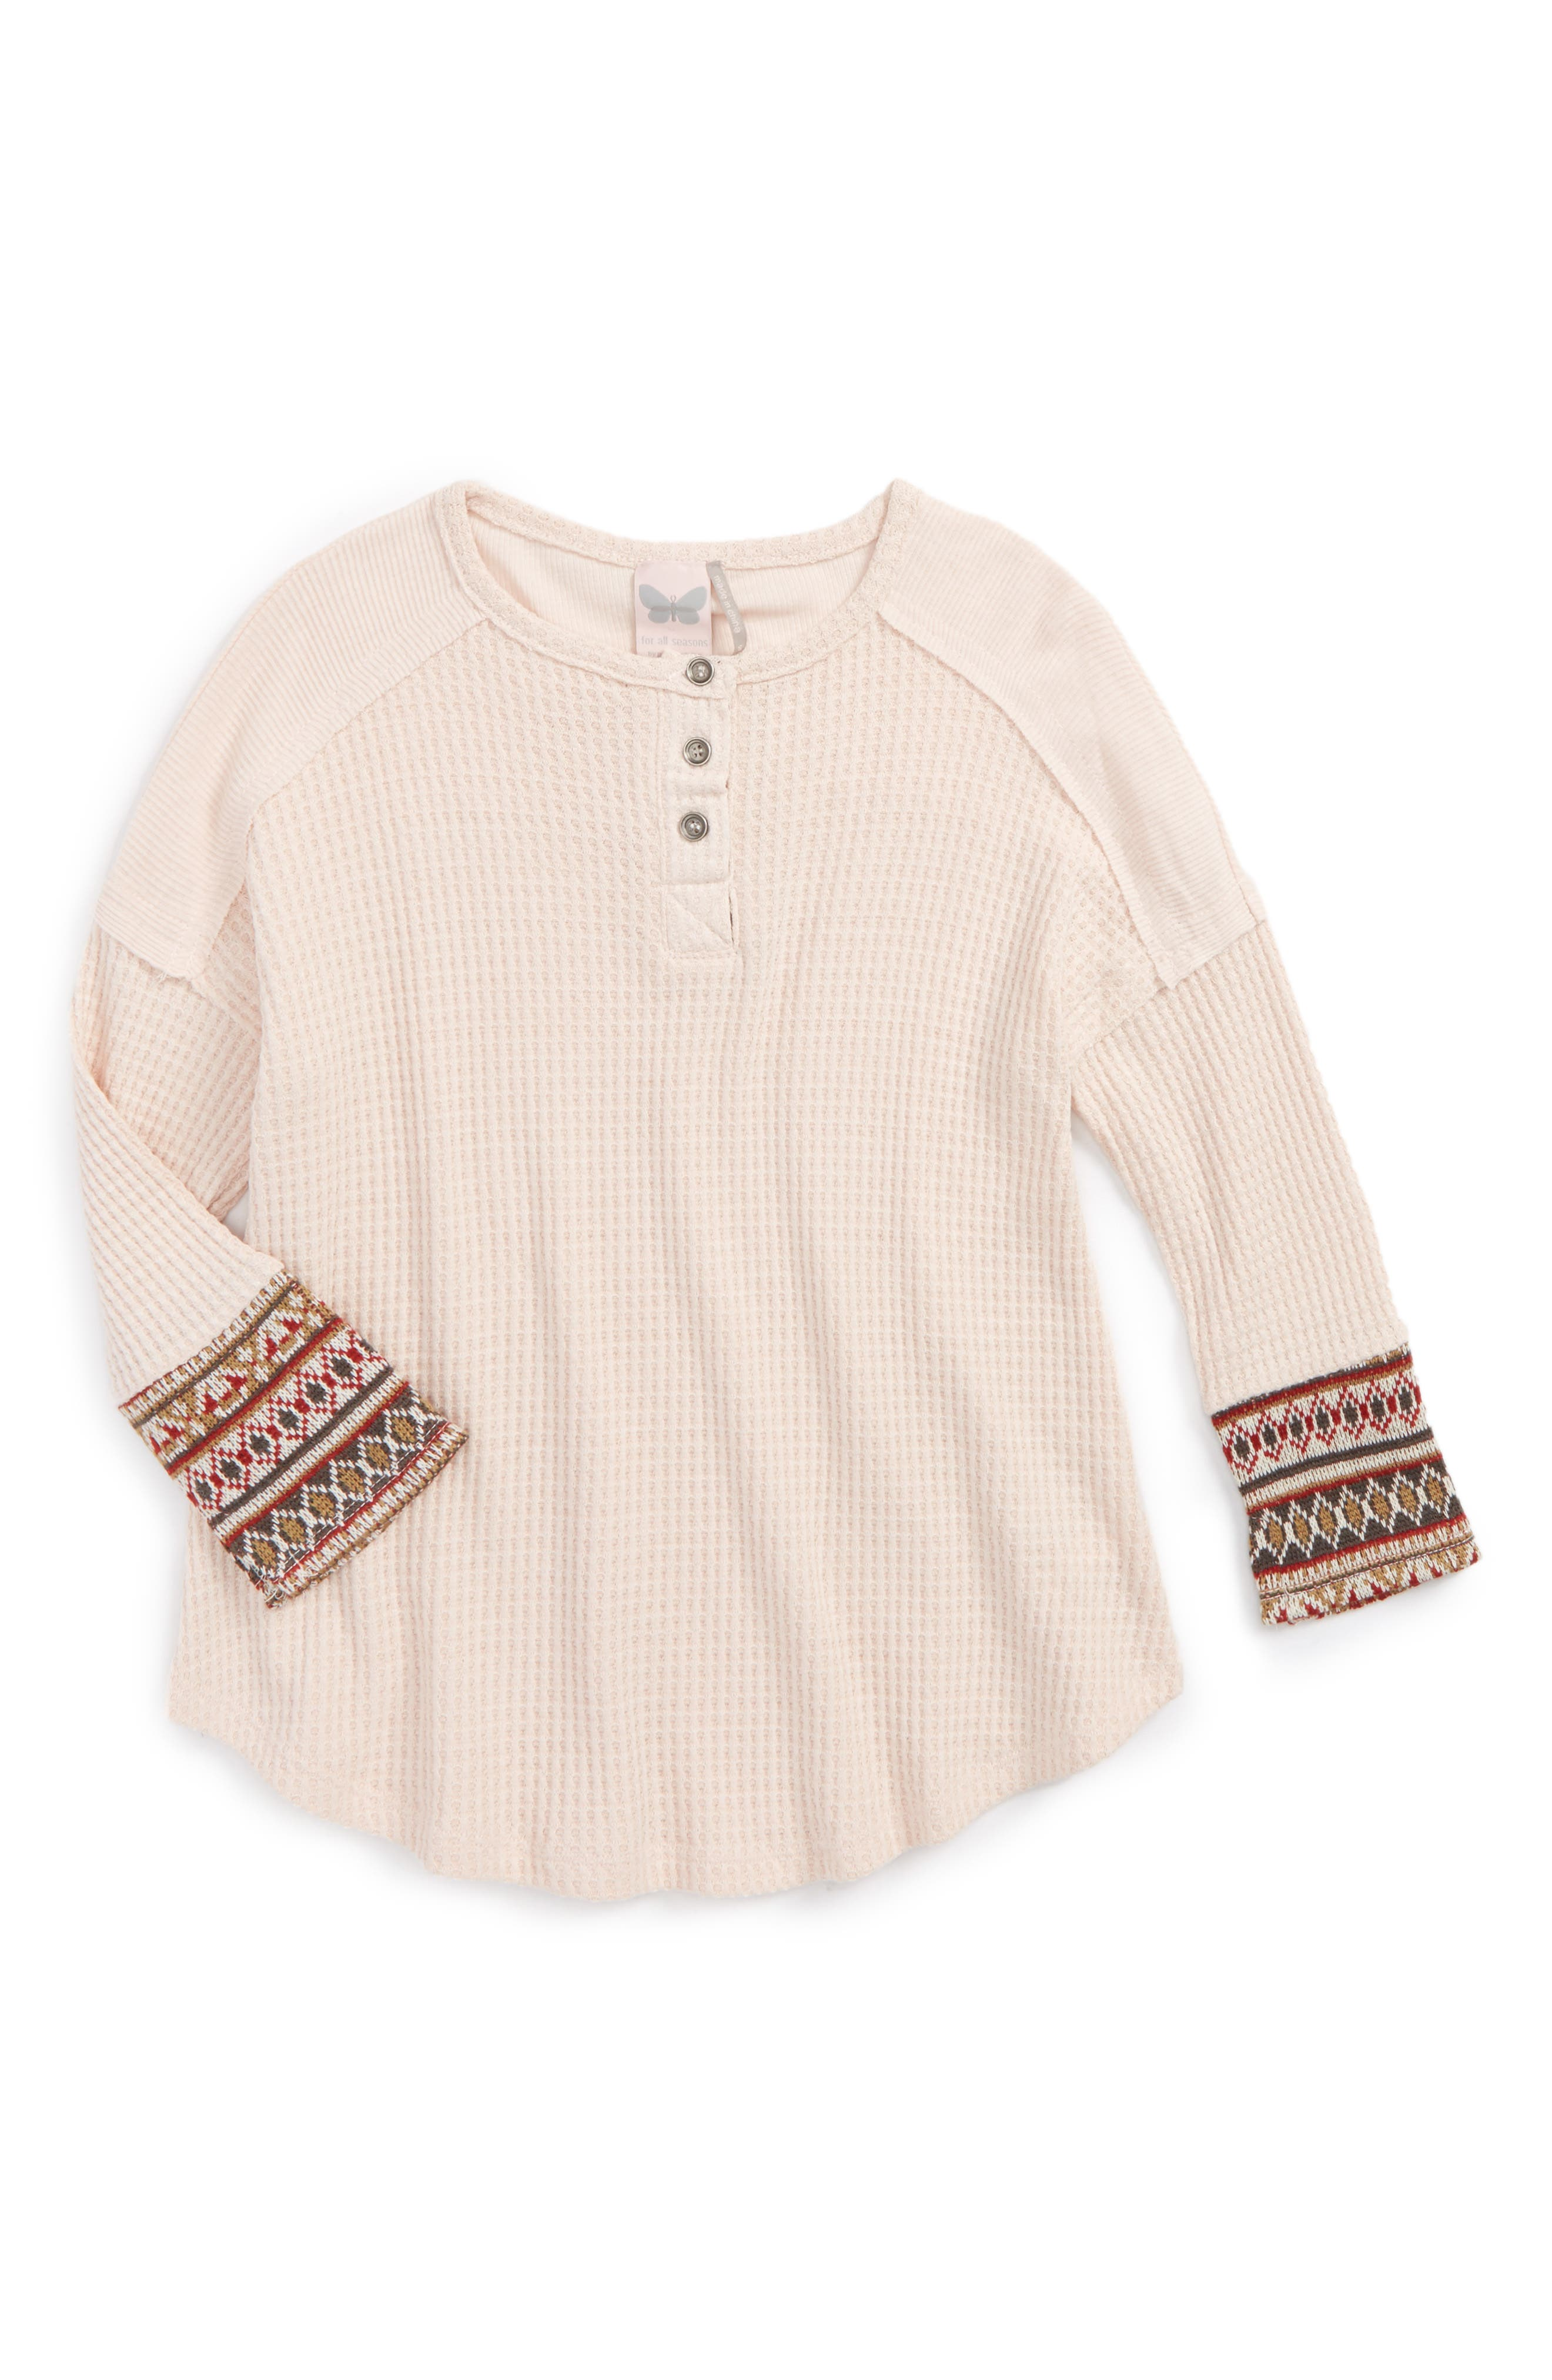 Fairisle Thermal Shirt,                         Main,                         color, Cream